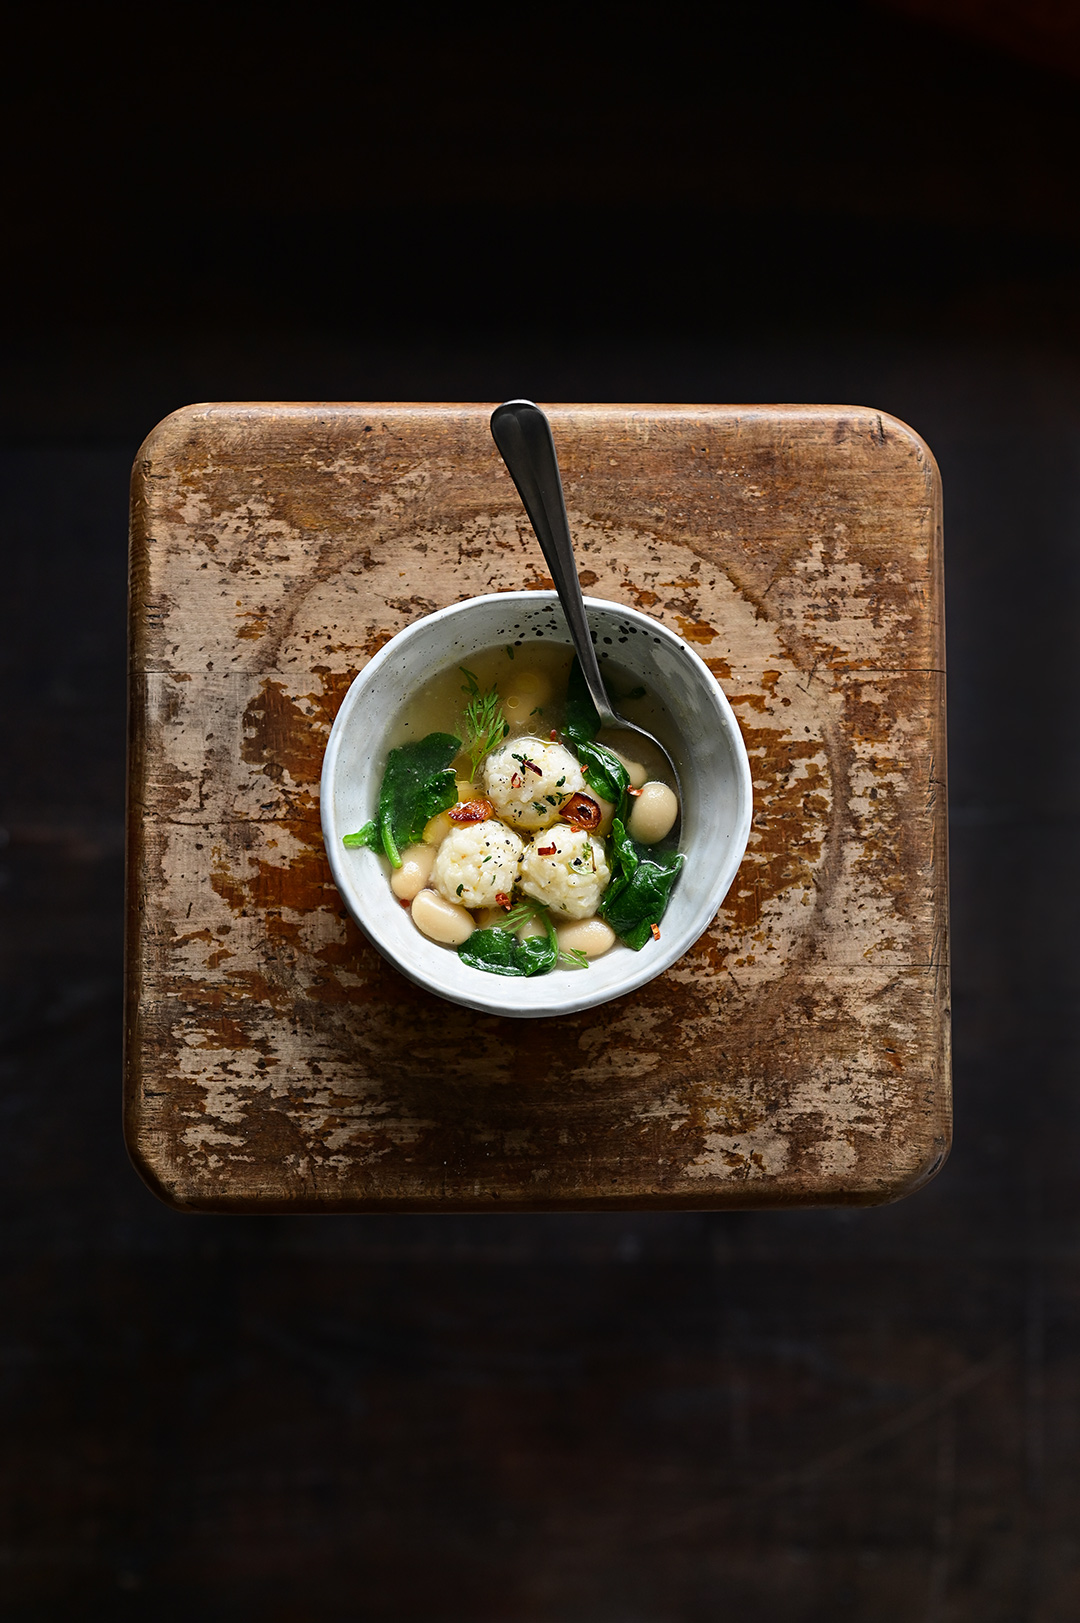 serving dumplings | Bouillon met spinazie en parmezaan rijstballetjes